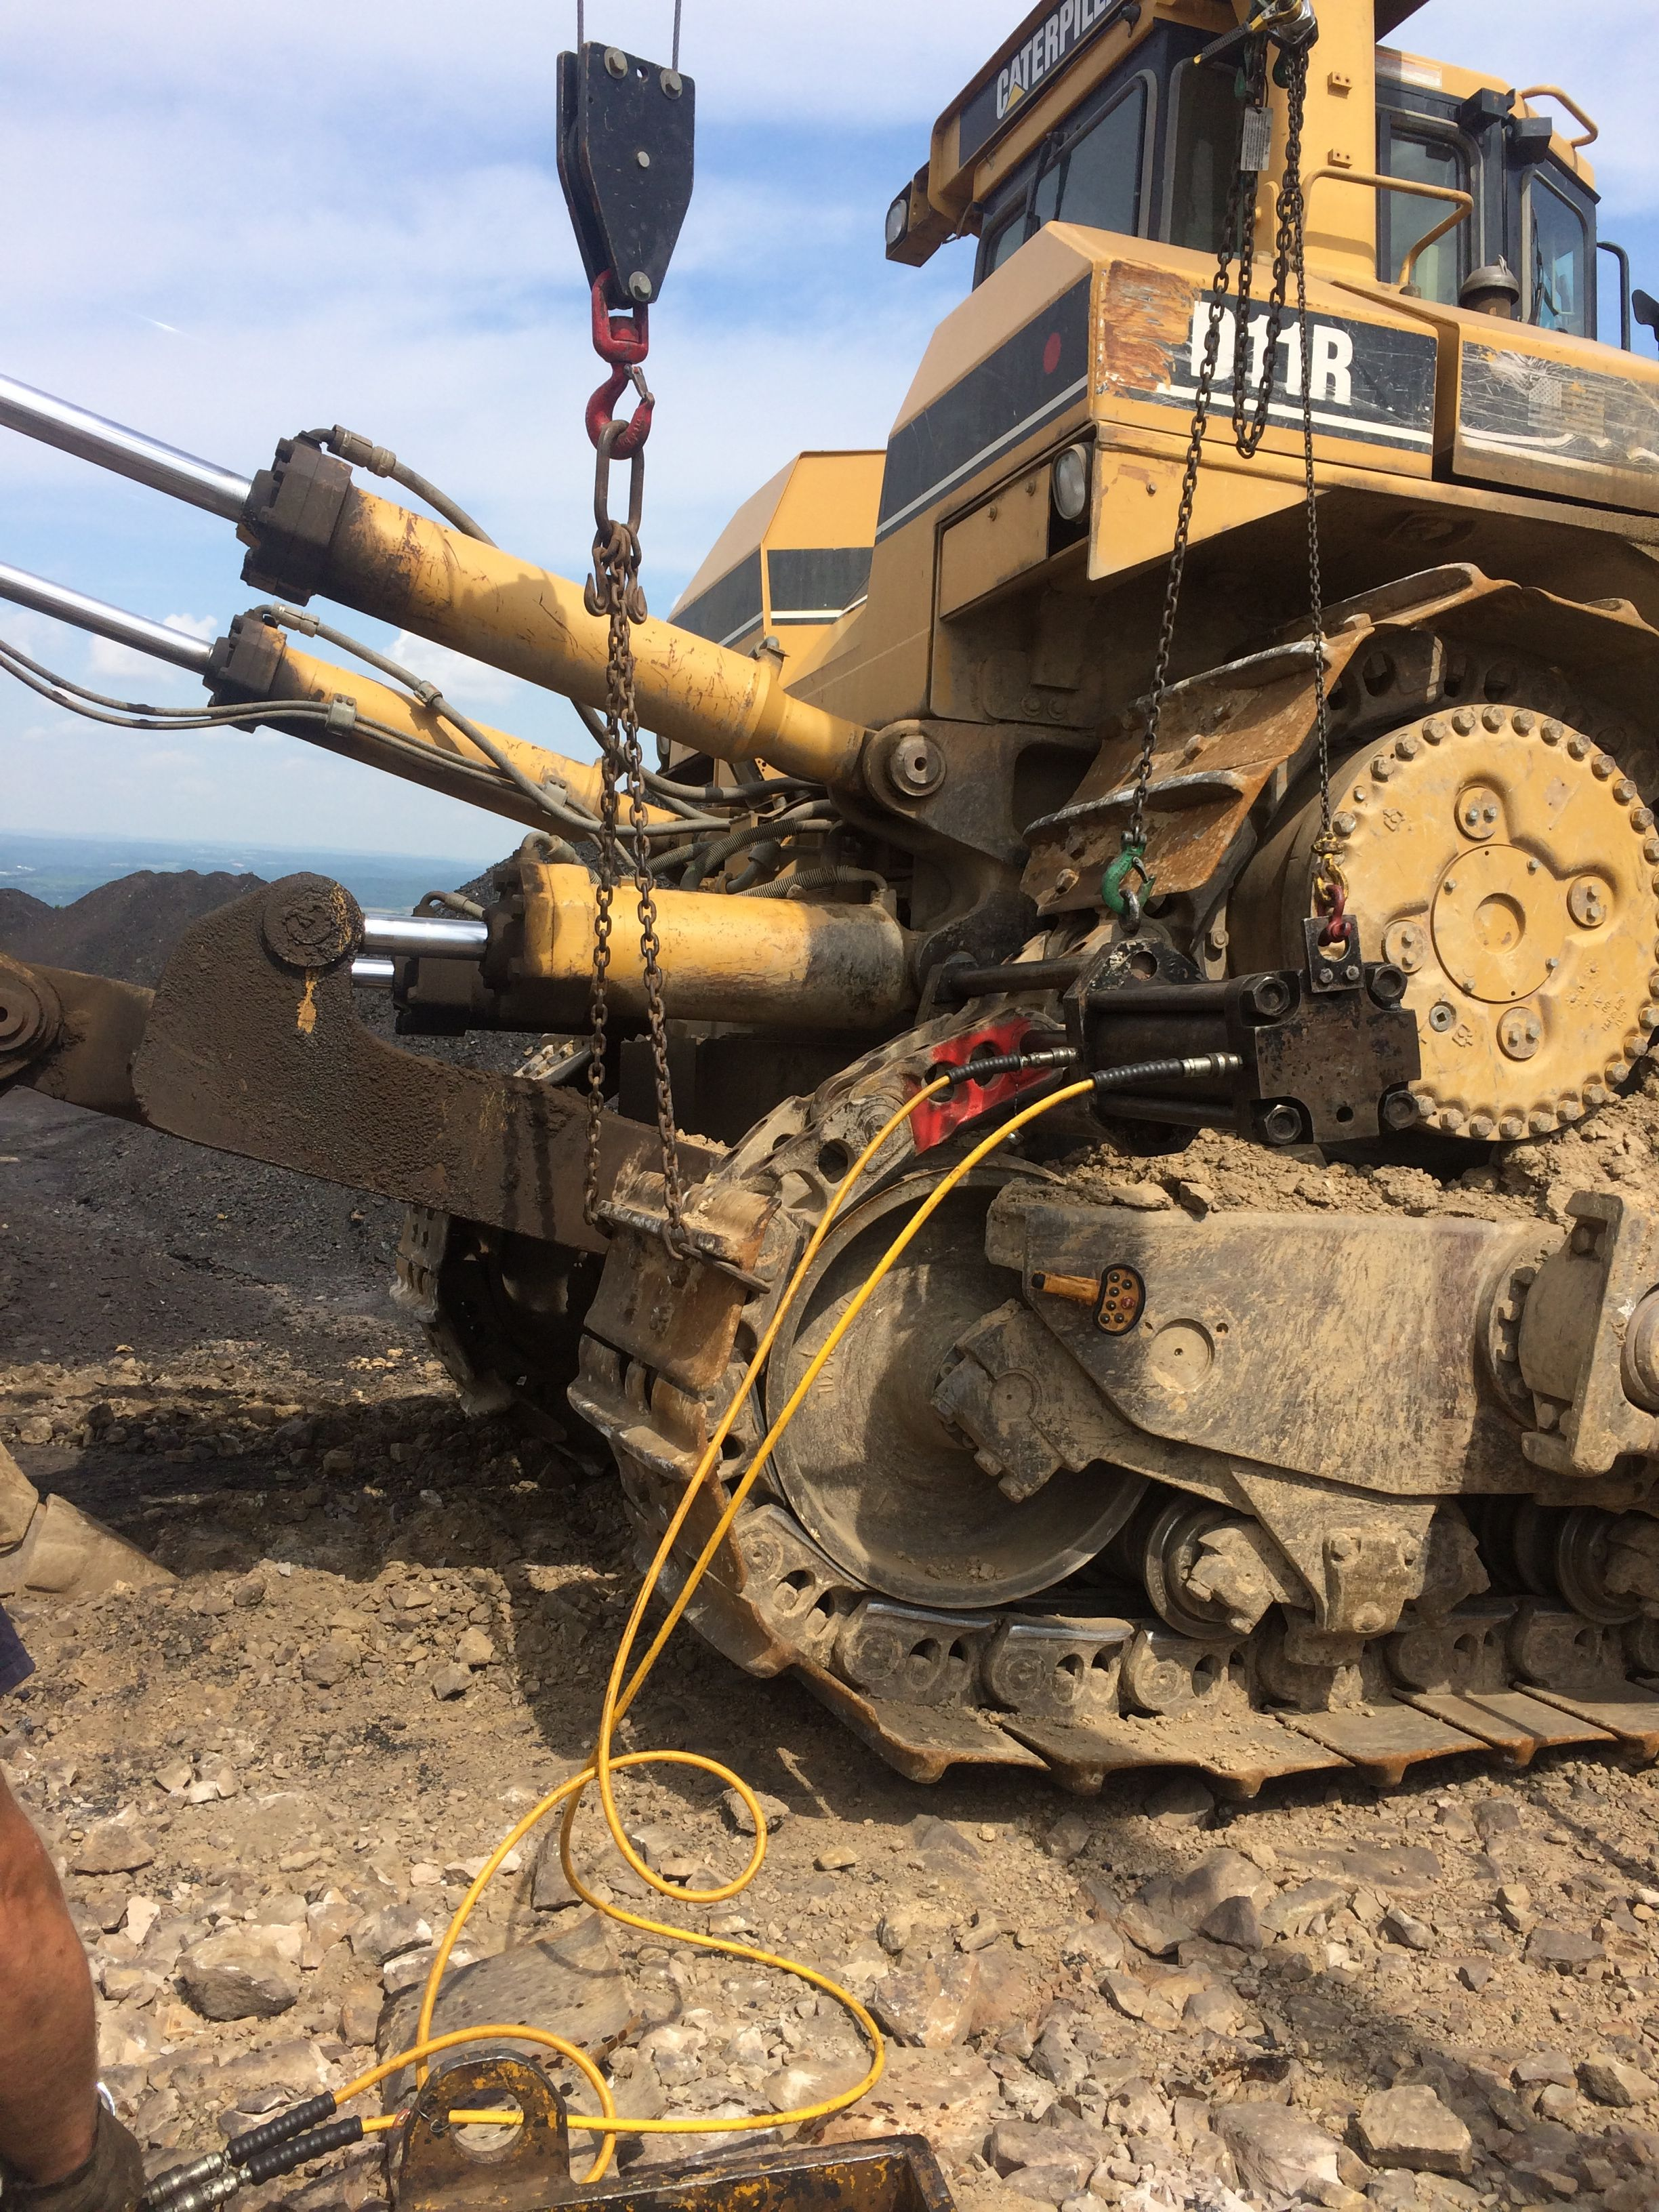 Pin by CJ Penford on Heavy equipment Heavy equipment